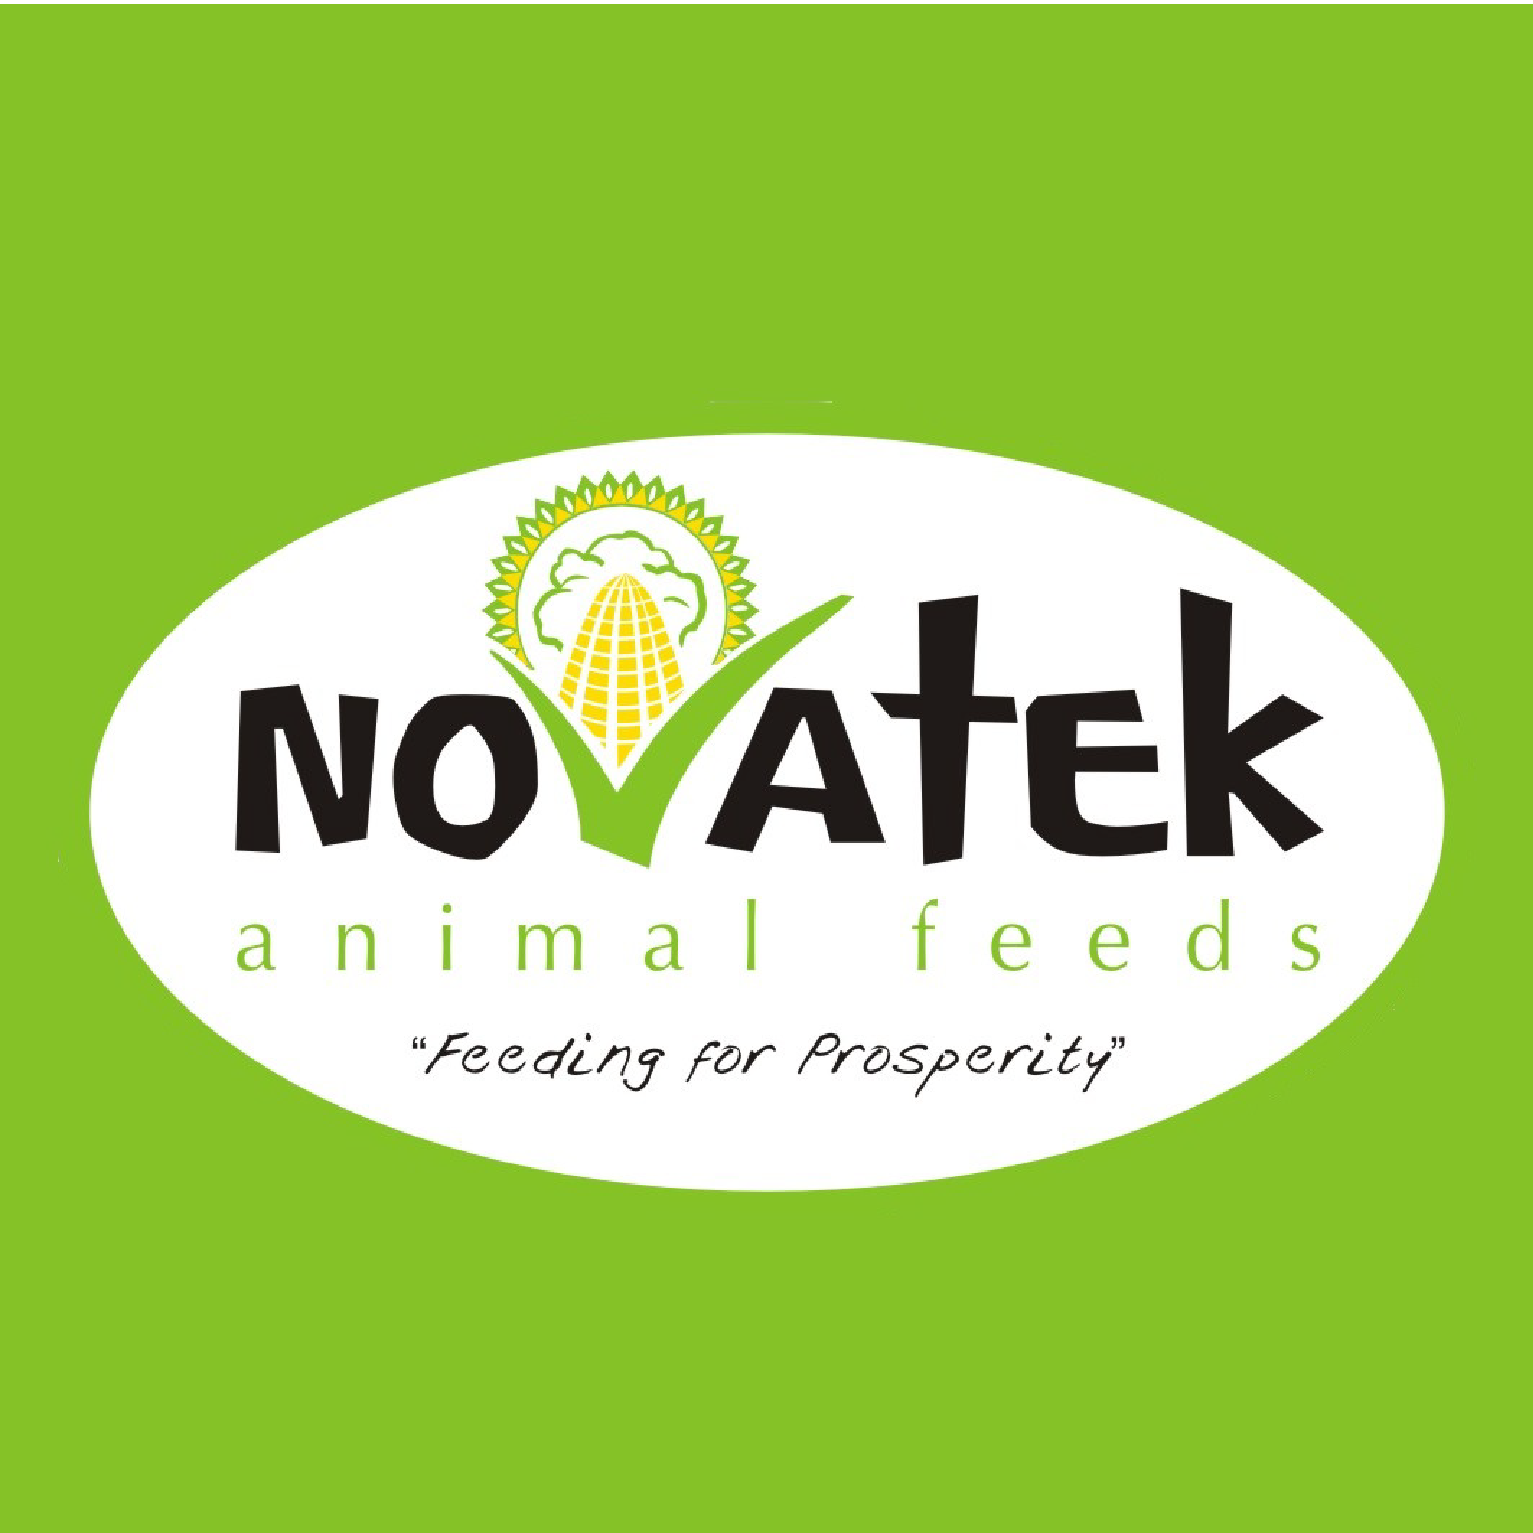 Novatek Animal Feeds